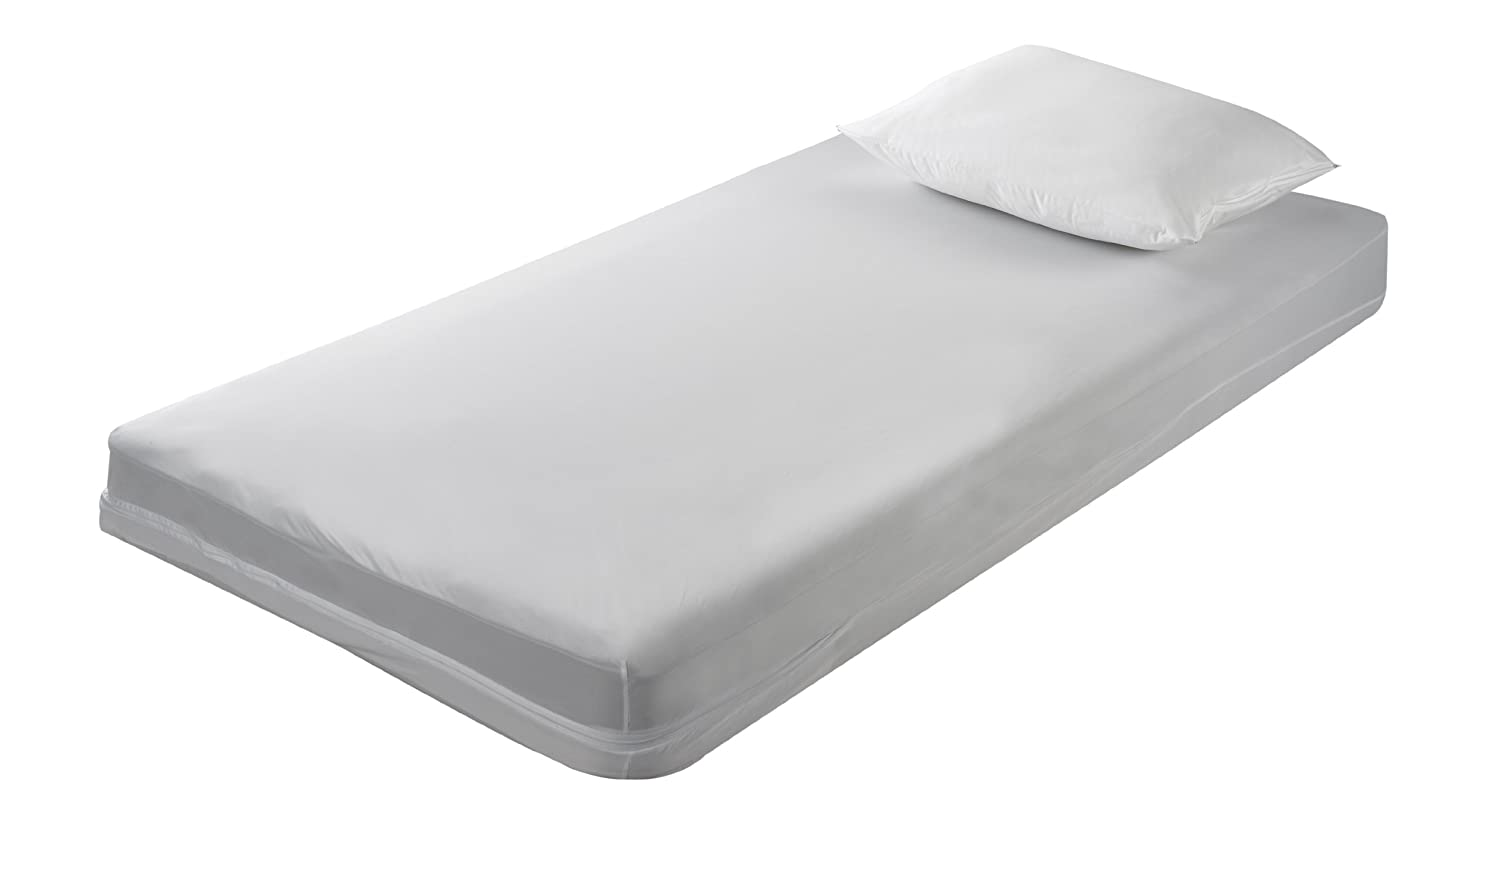 6 Gauge Vinyl Zippered Full Size Mattress Cover 9 Inch